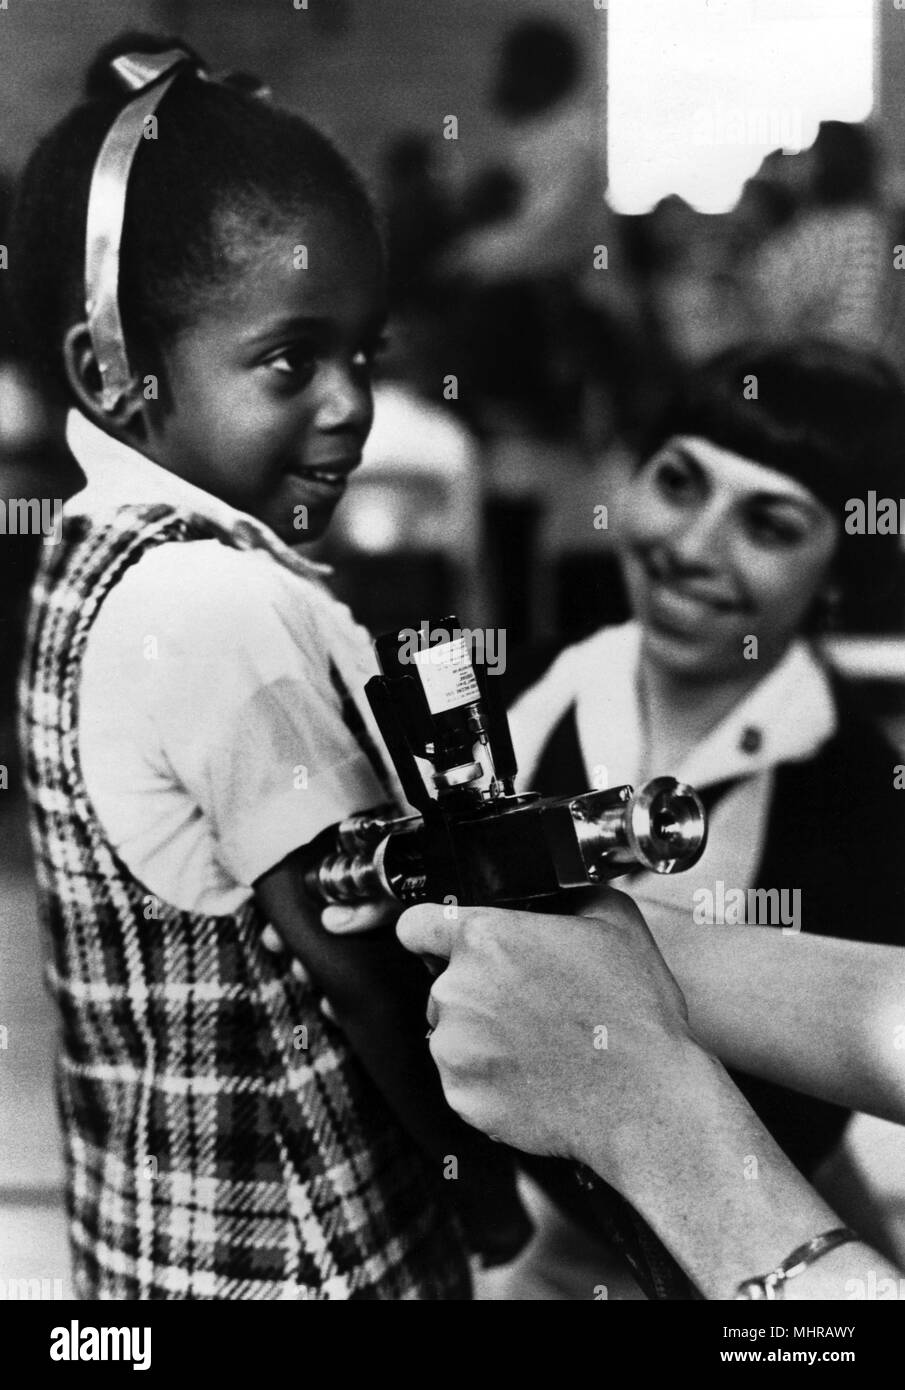 Public health worker vaccinating a young girl, with a jet injector, 1986. Image courtesy Centers for Disease Control (CDC). () - Stock Image